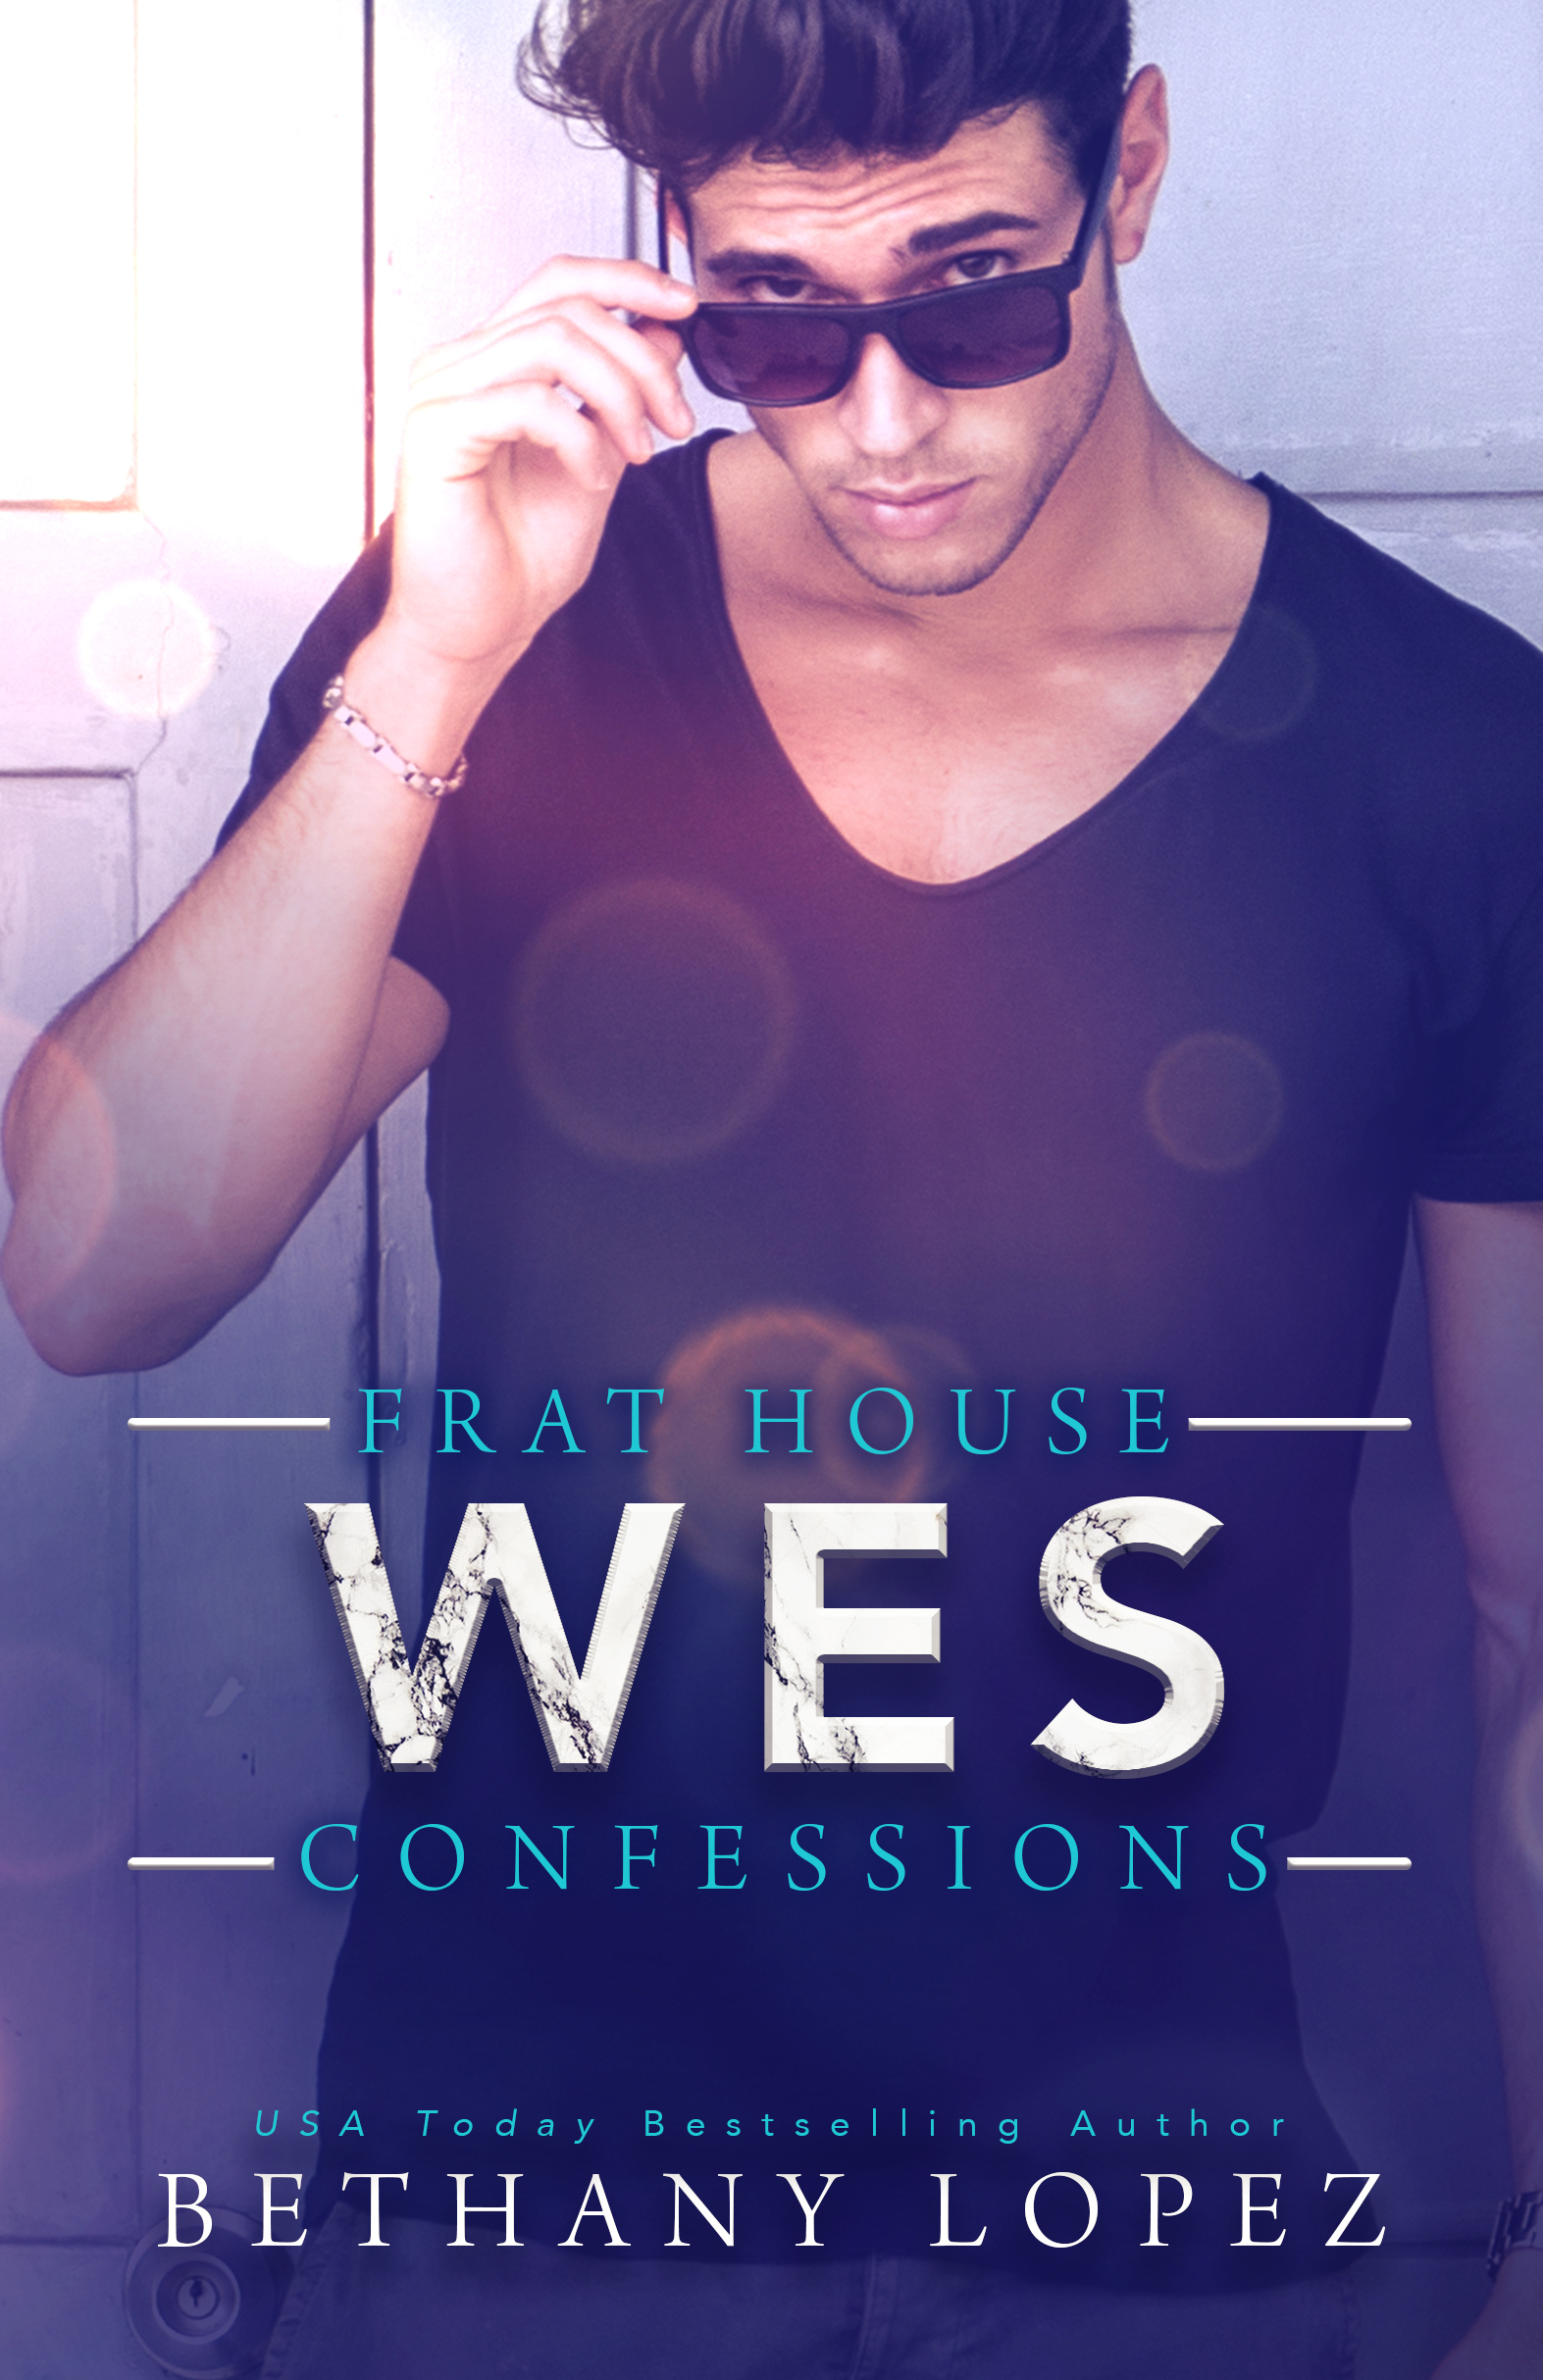 Frat House Confessions Wes by Bethany Lopez